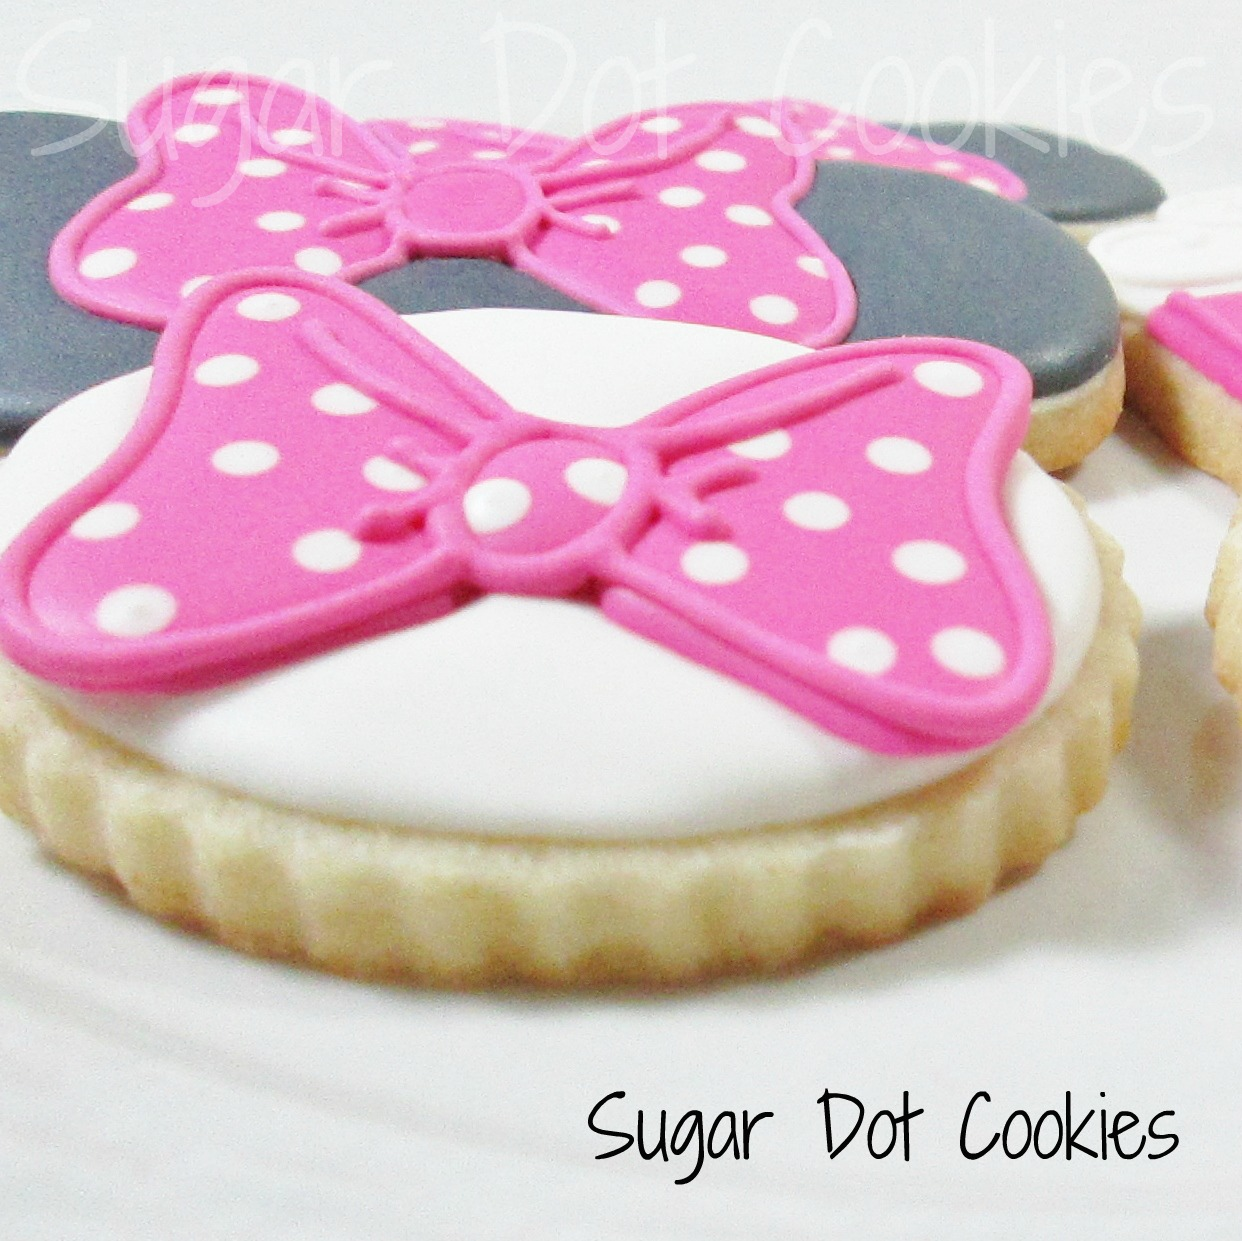 The bows on the oval cookies were royal icing transfers ...